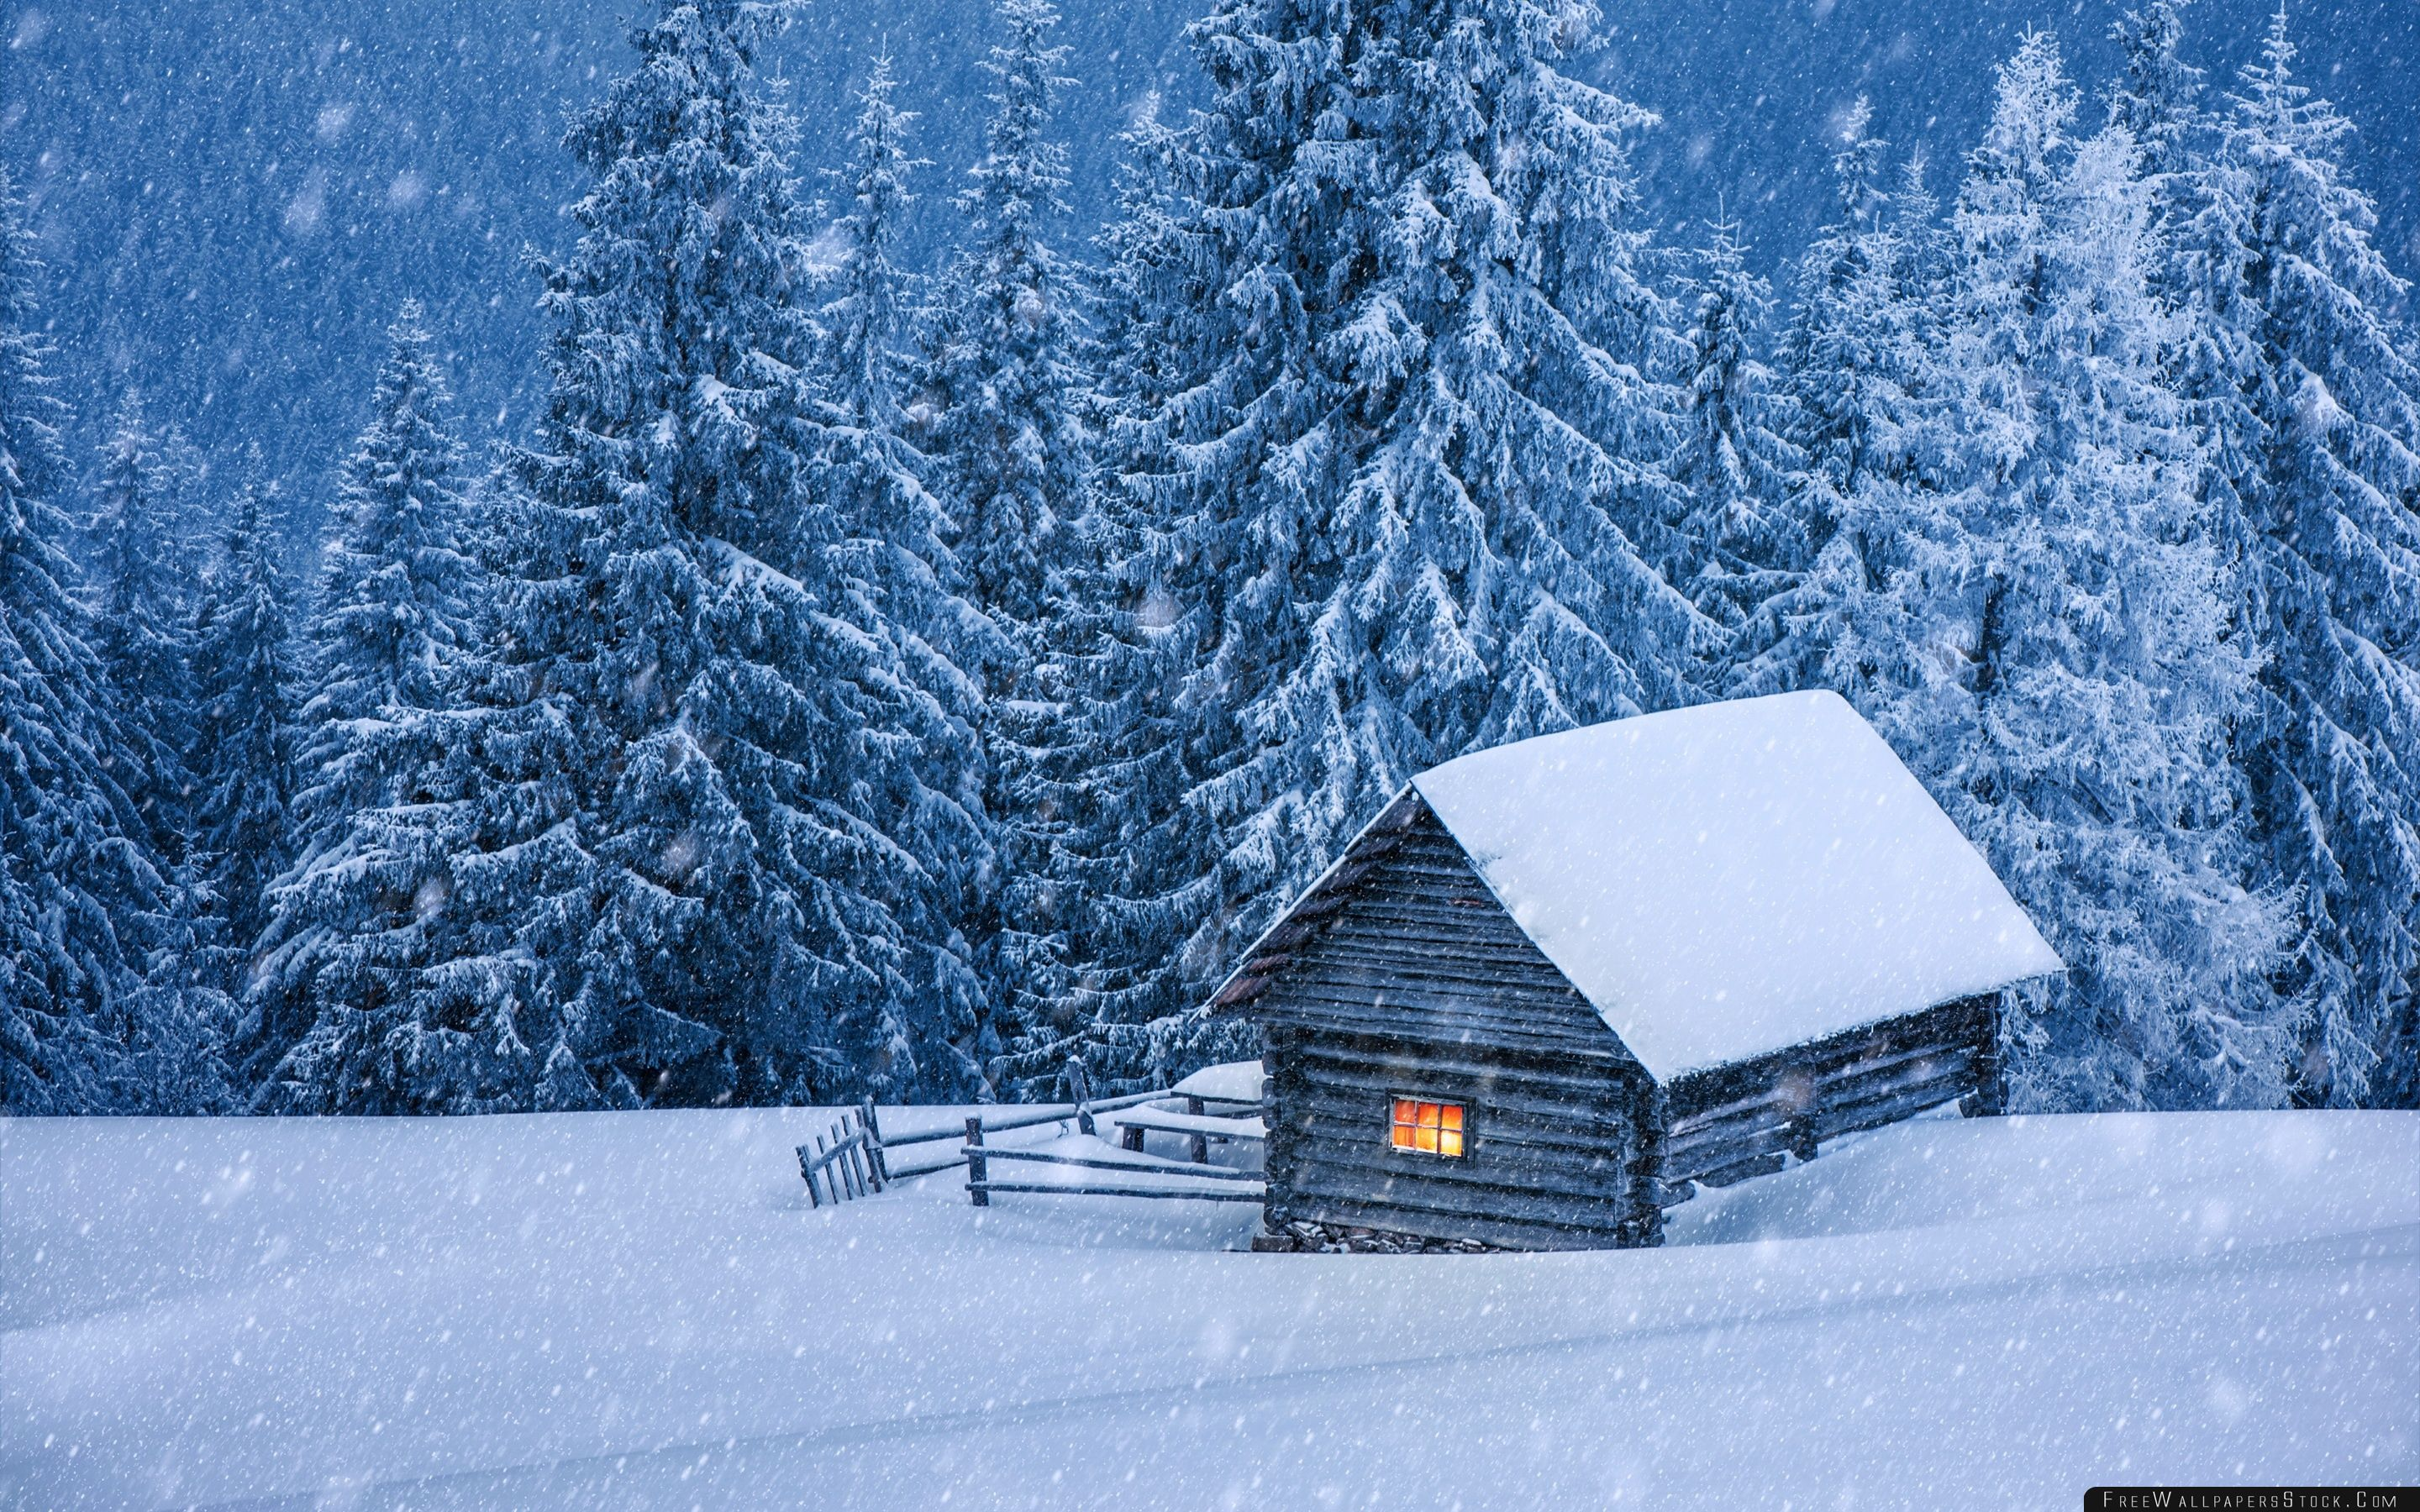 Download Free Wallpaper Snowy Forest Cabin